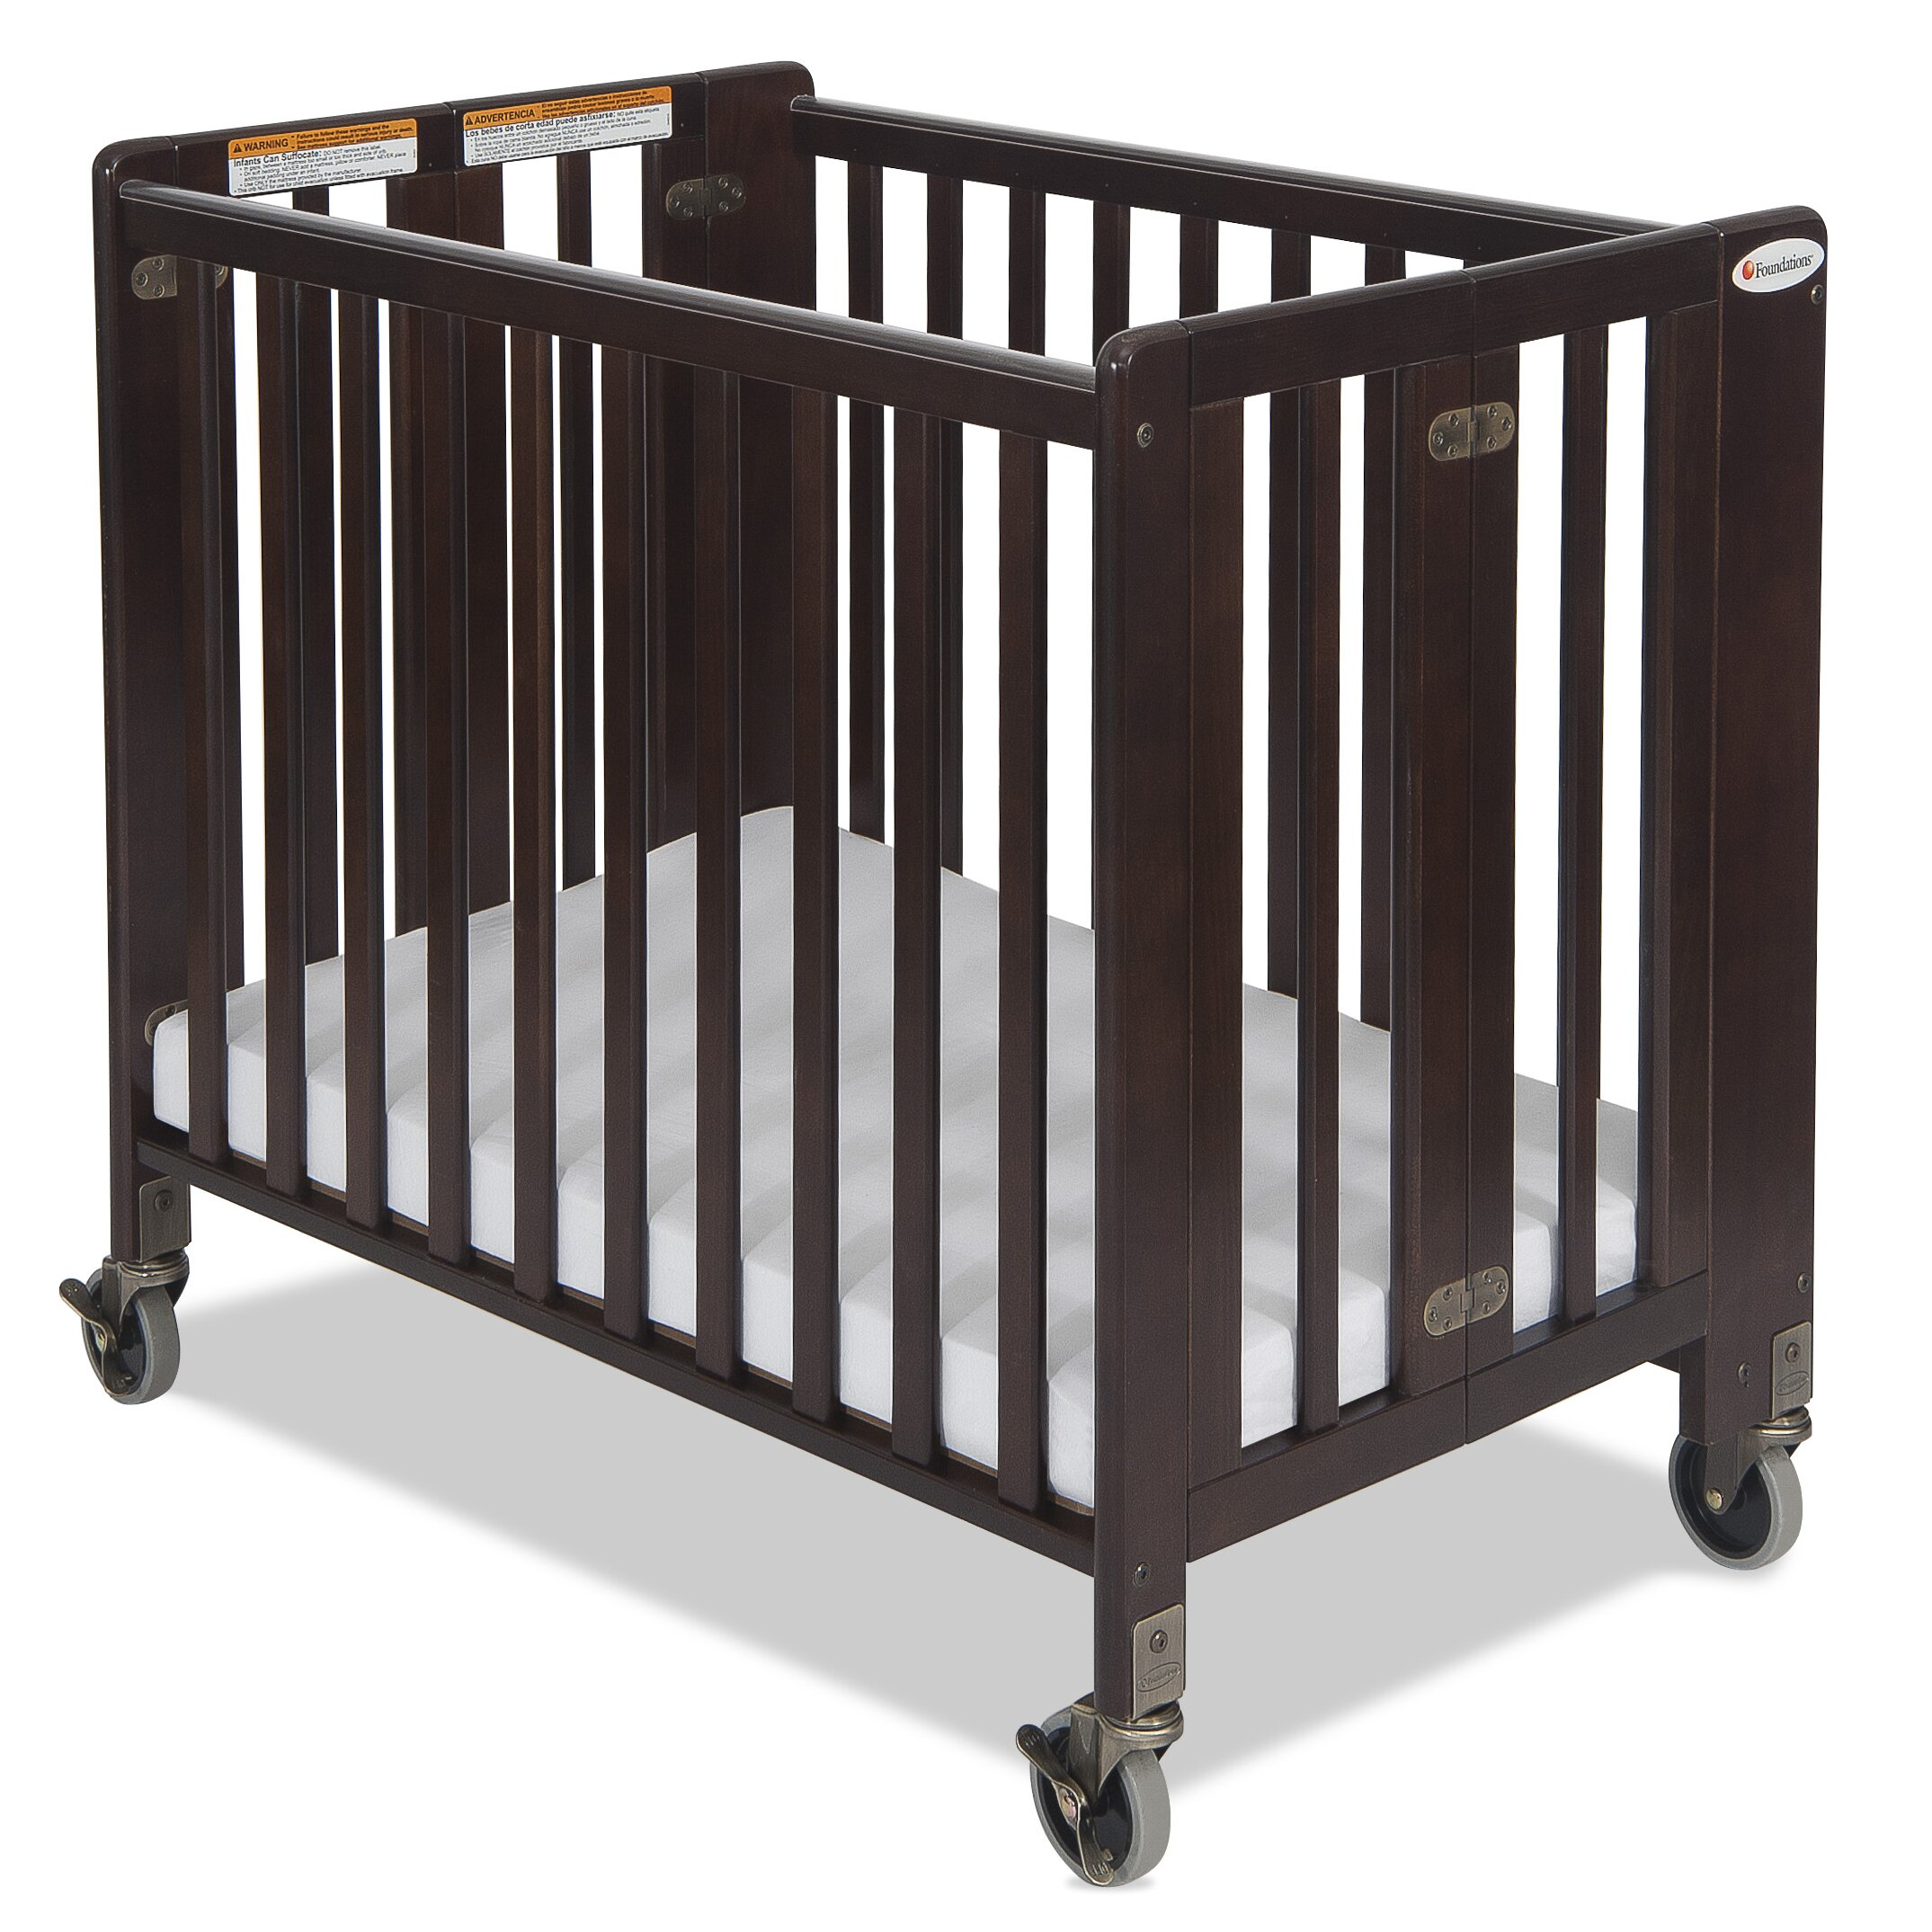 Evacuation crib for sale - Foundations Hideaway Compact Folding Convertible Crib With Mattress